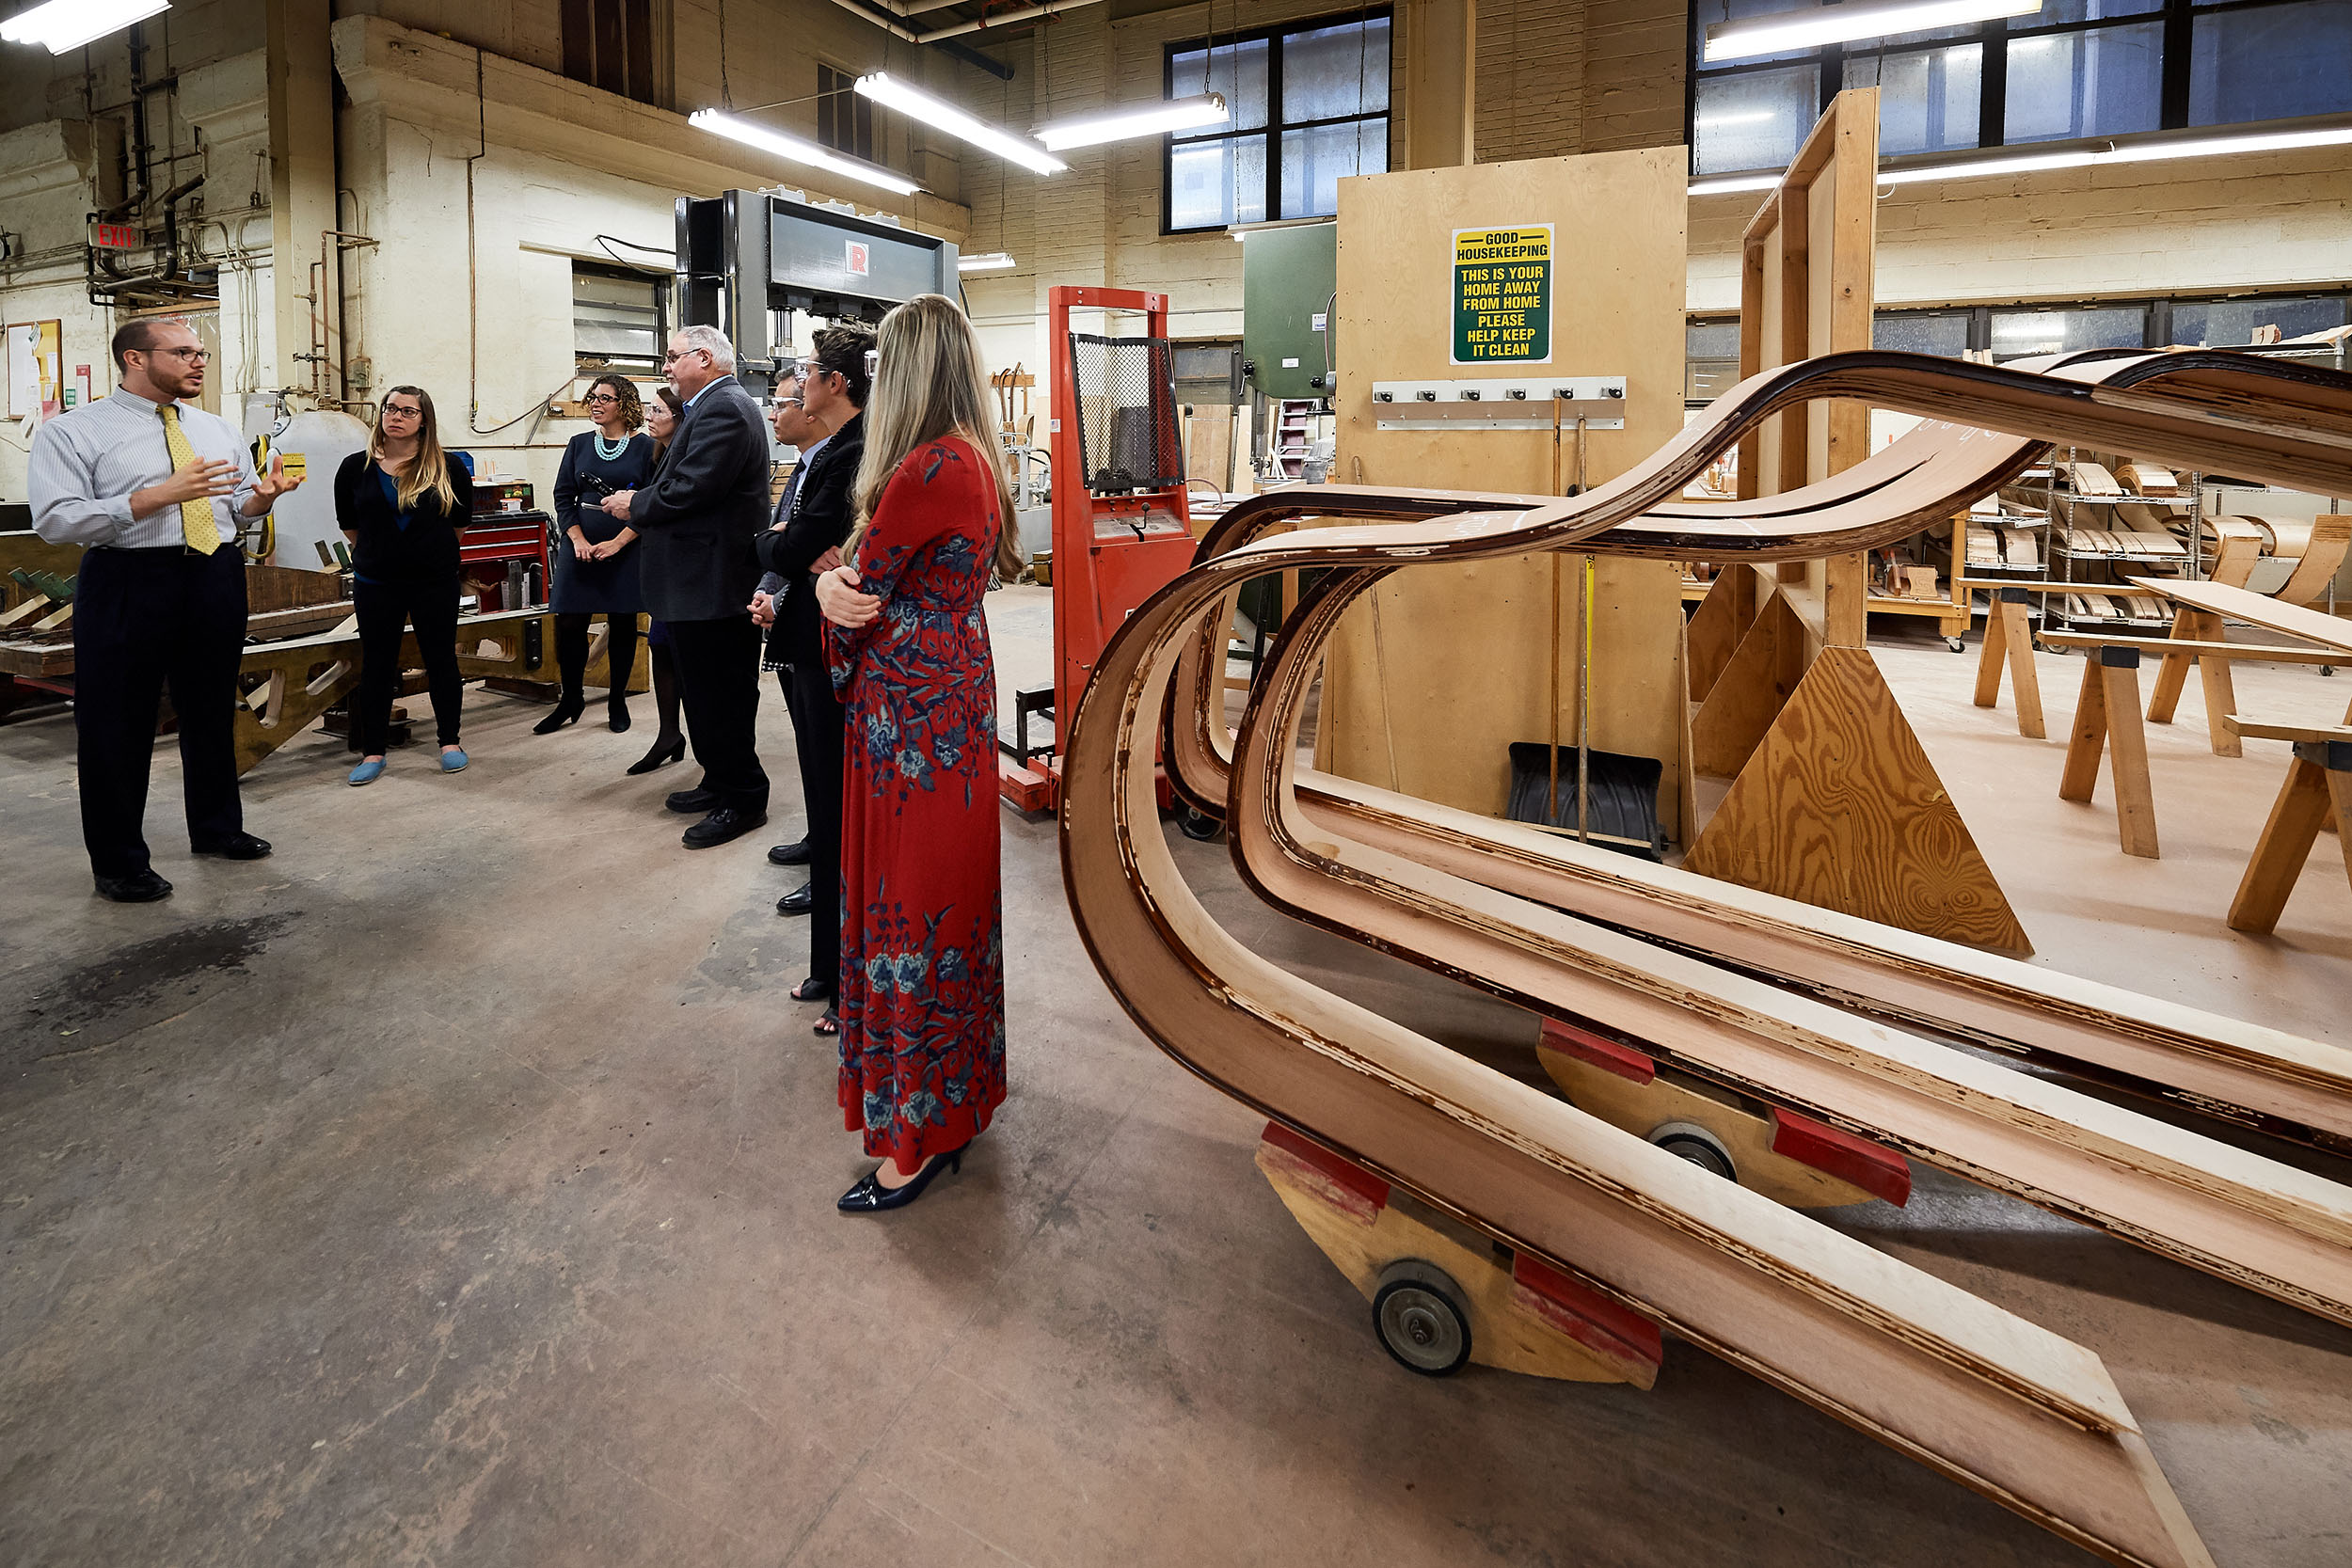 Logan Thompson, selection room manager, explains the process for forming the rim of a Steinway & Sons piano during a factory tour